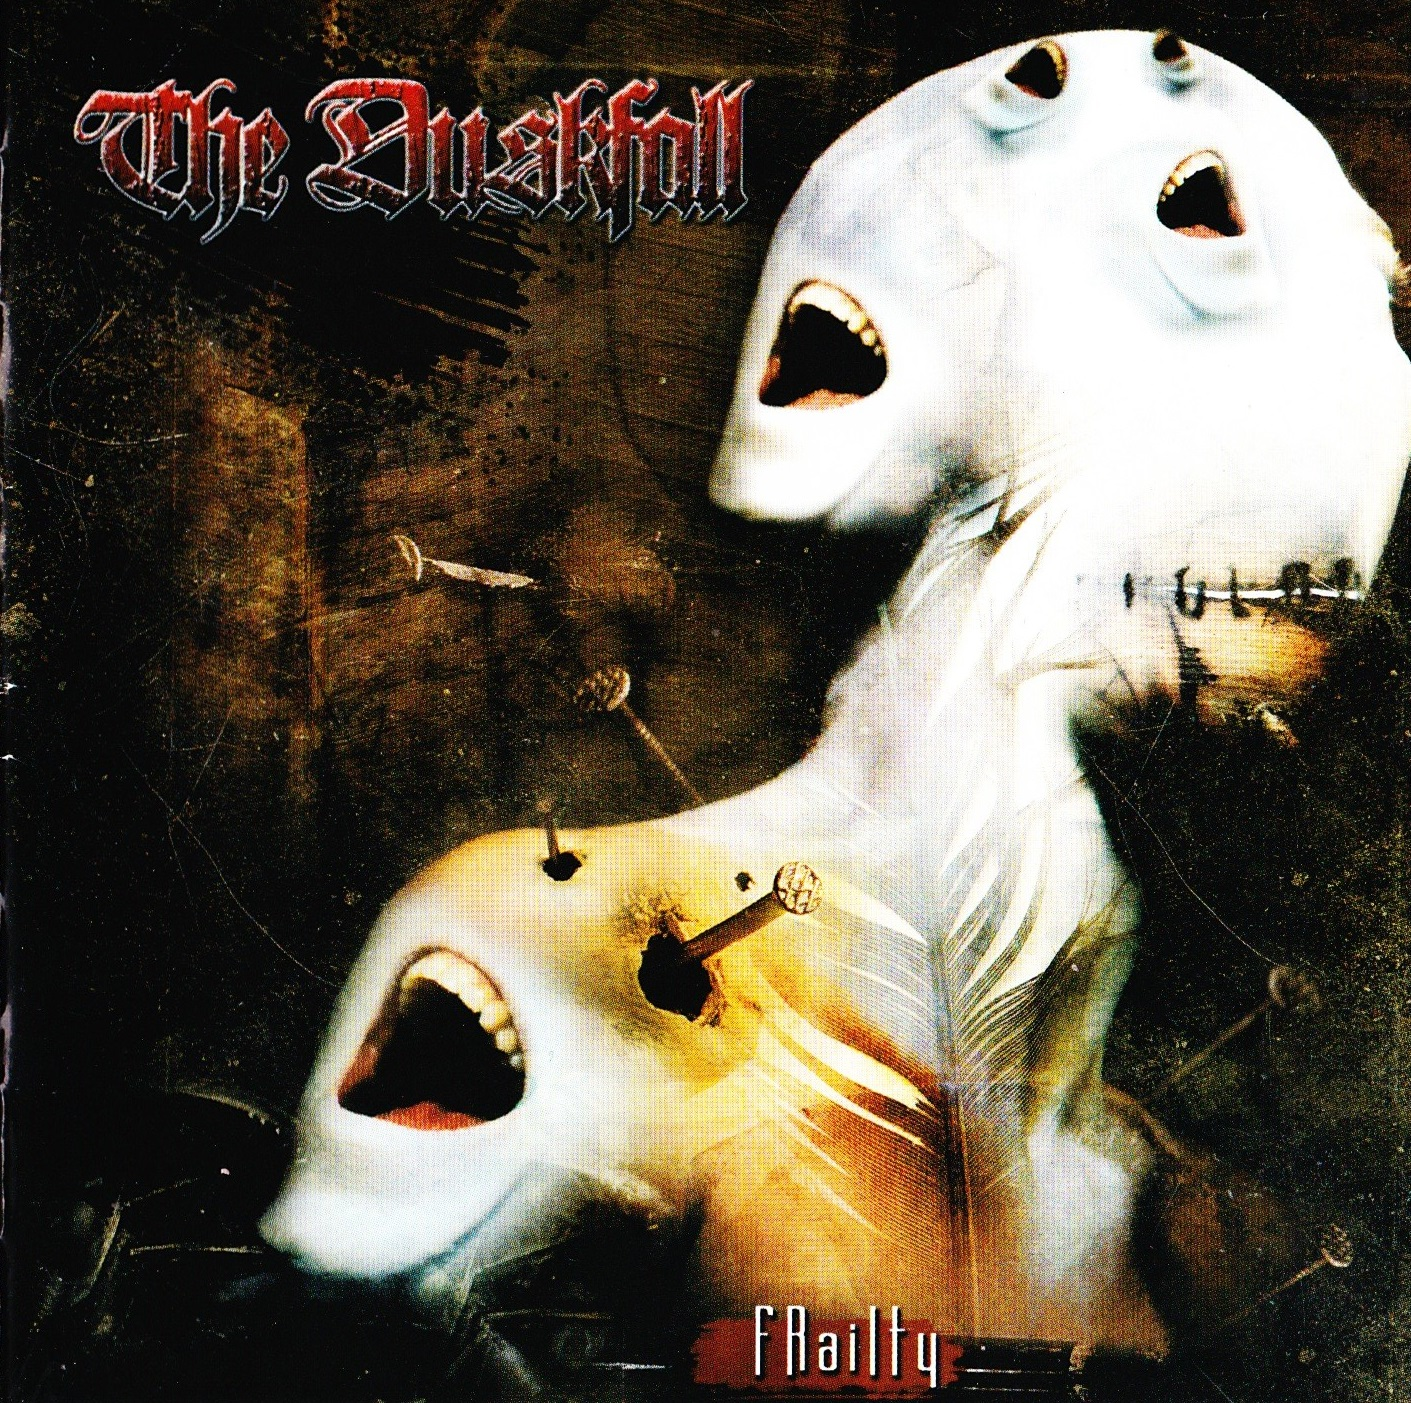 The Duskfall — Frailty (2002)